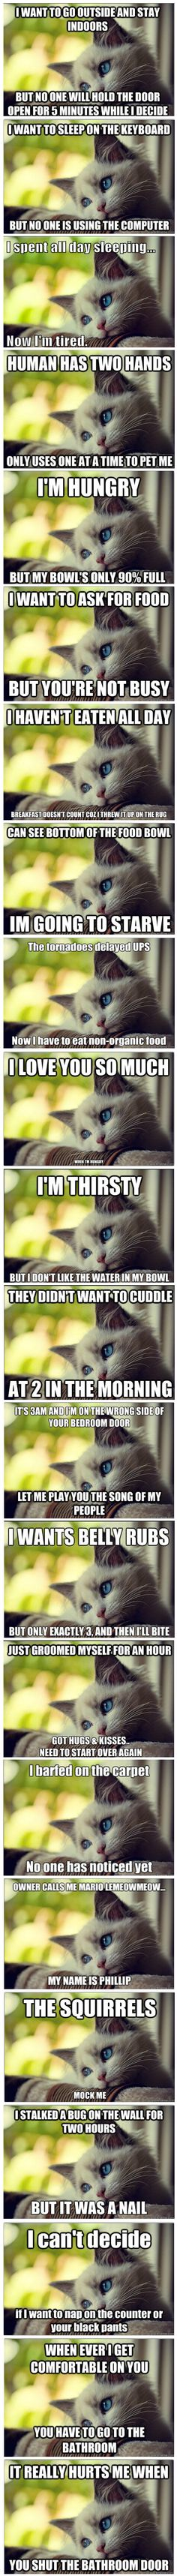 Cat problems.. too funny